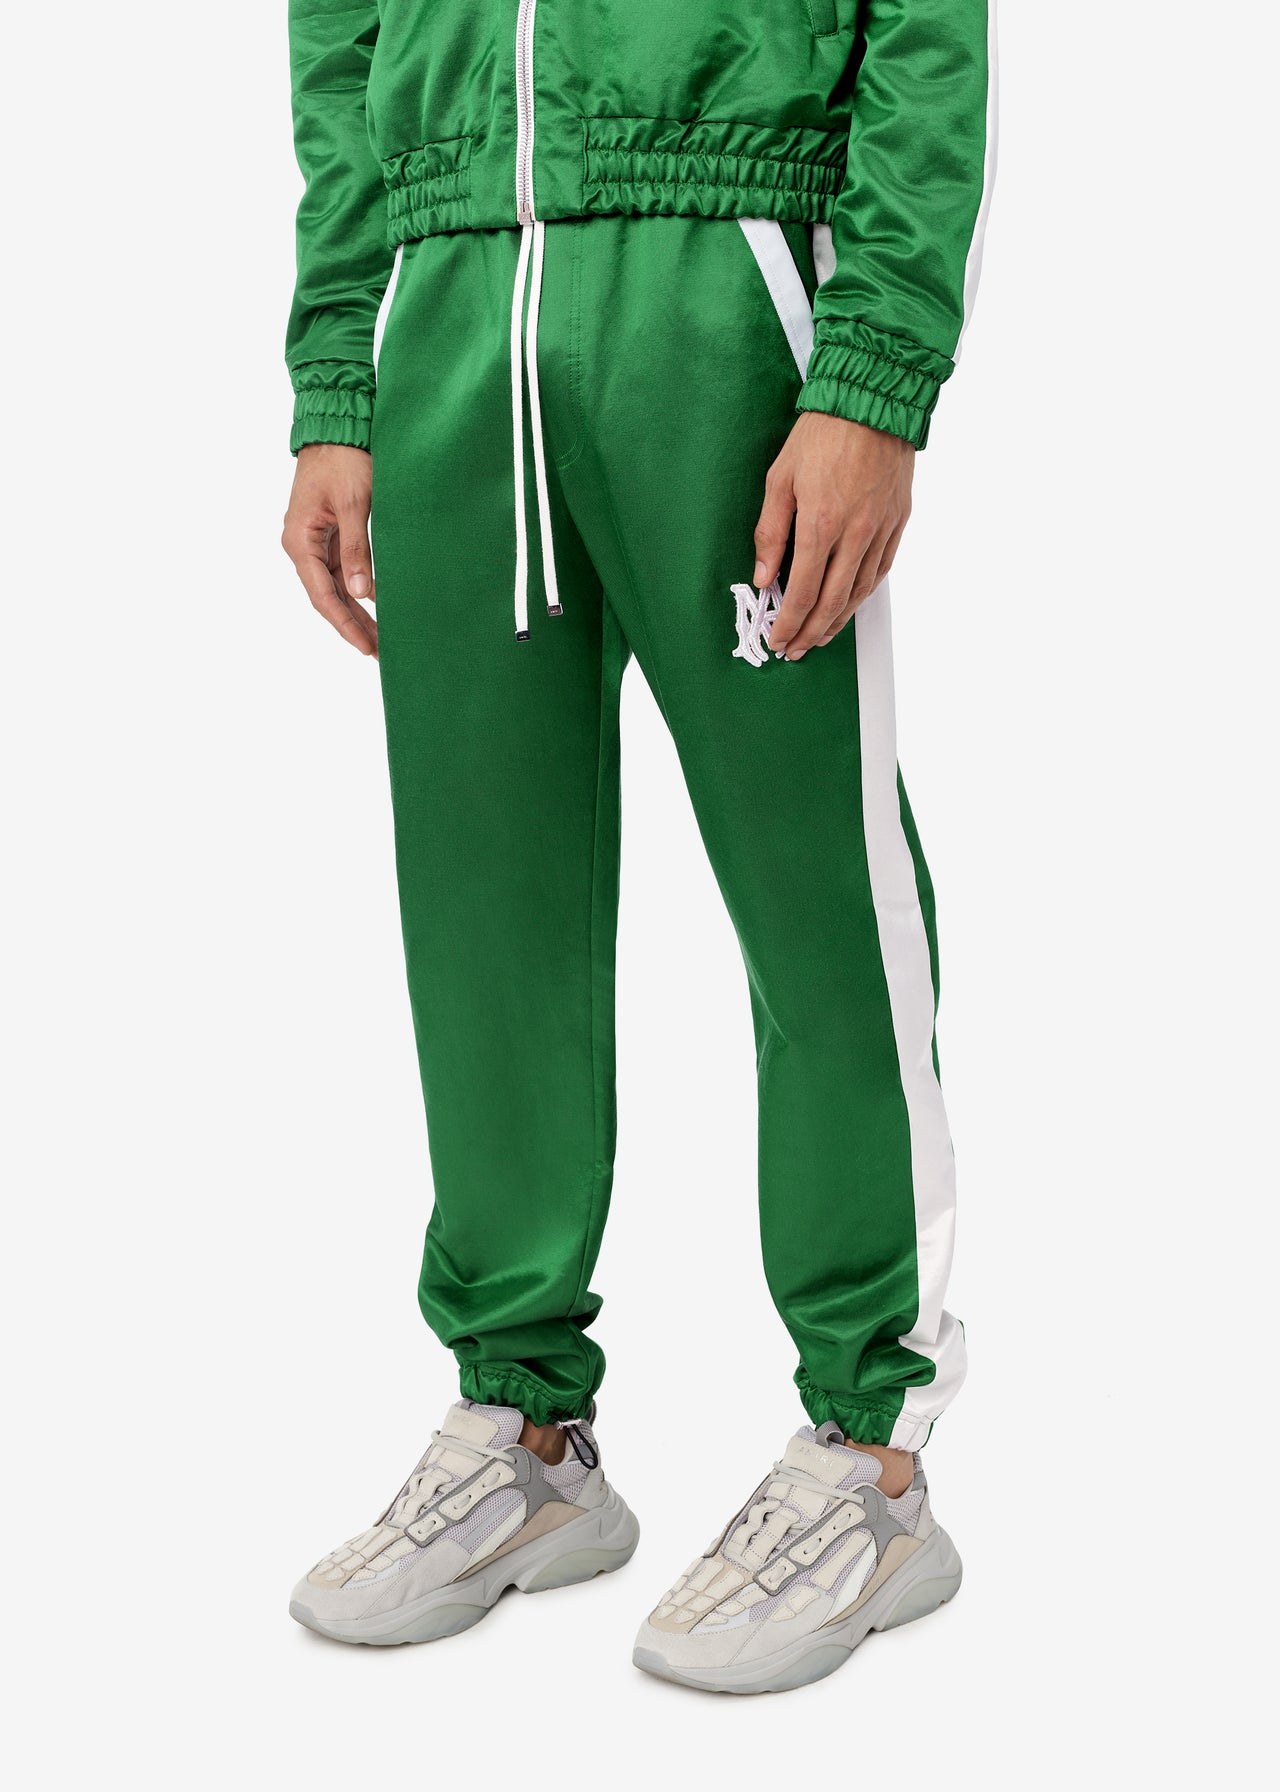 DRAWSTRING TRACKPANT - TENNIS GREEN / WHITE